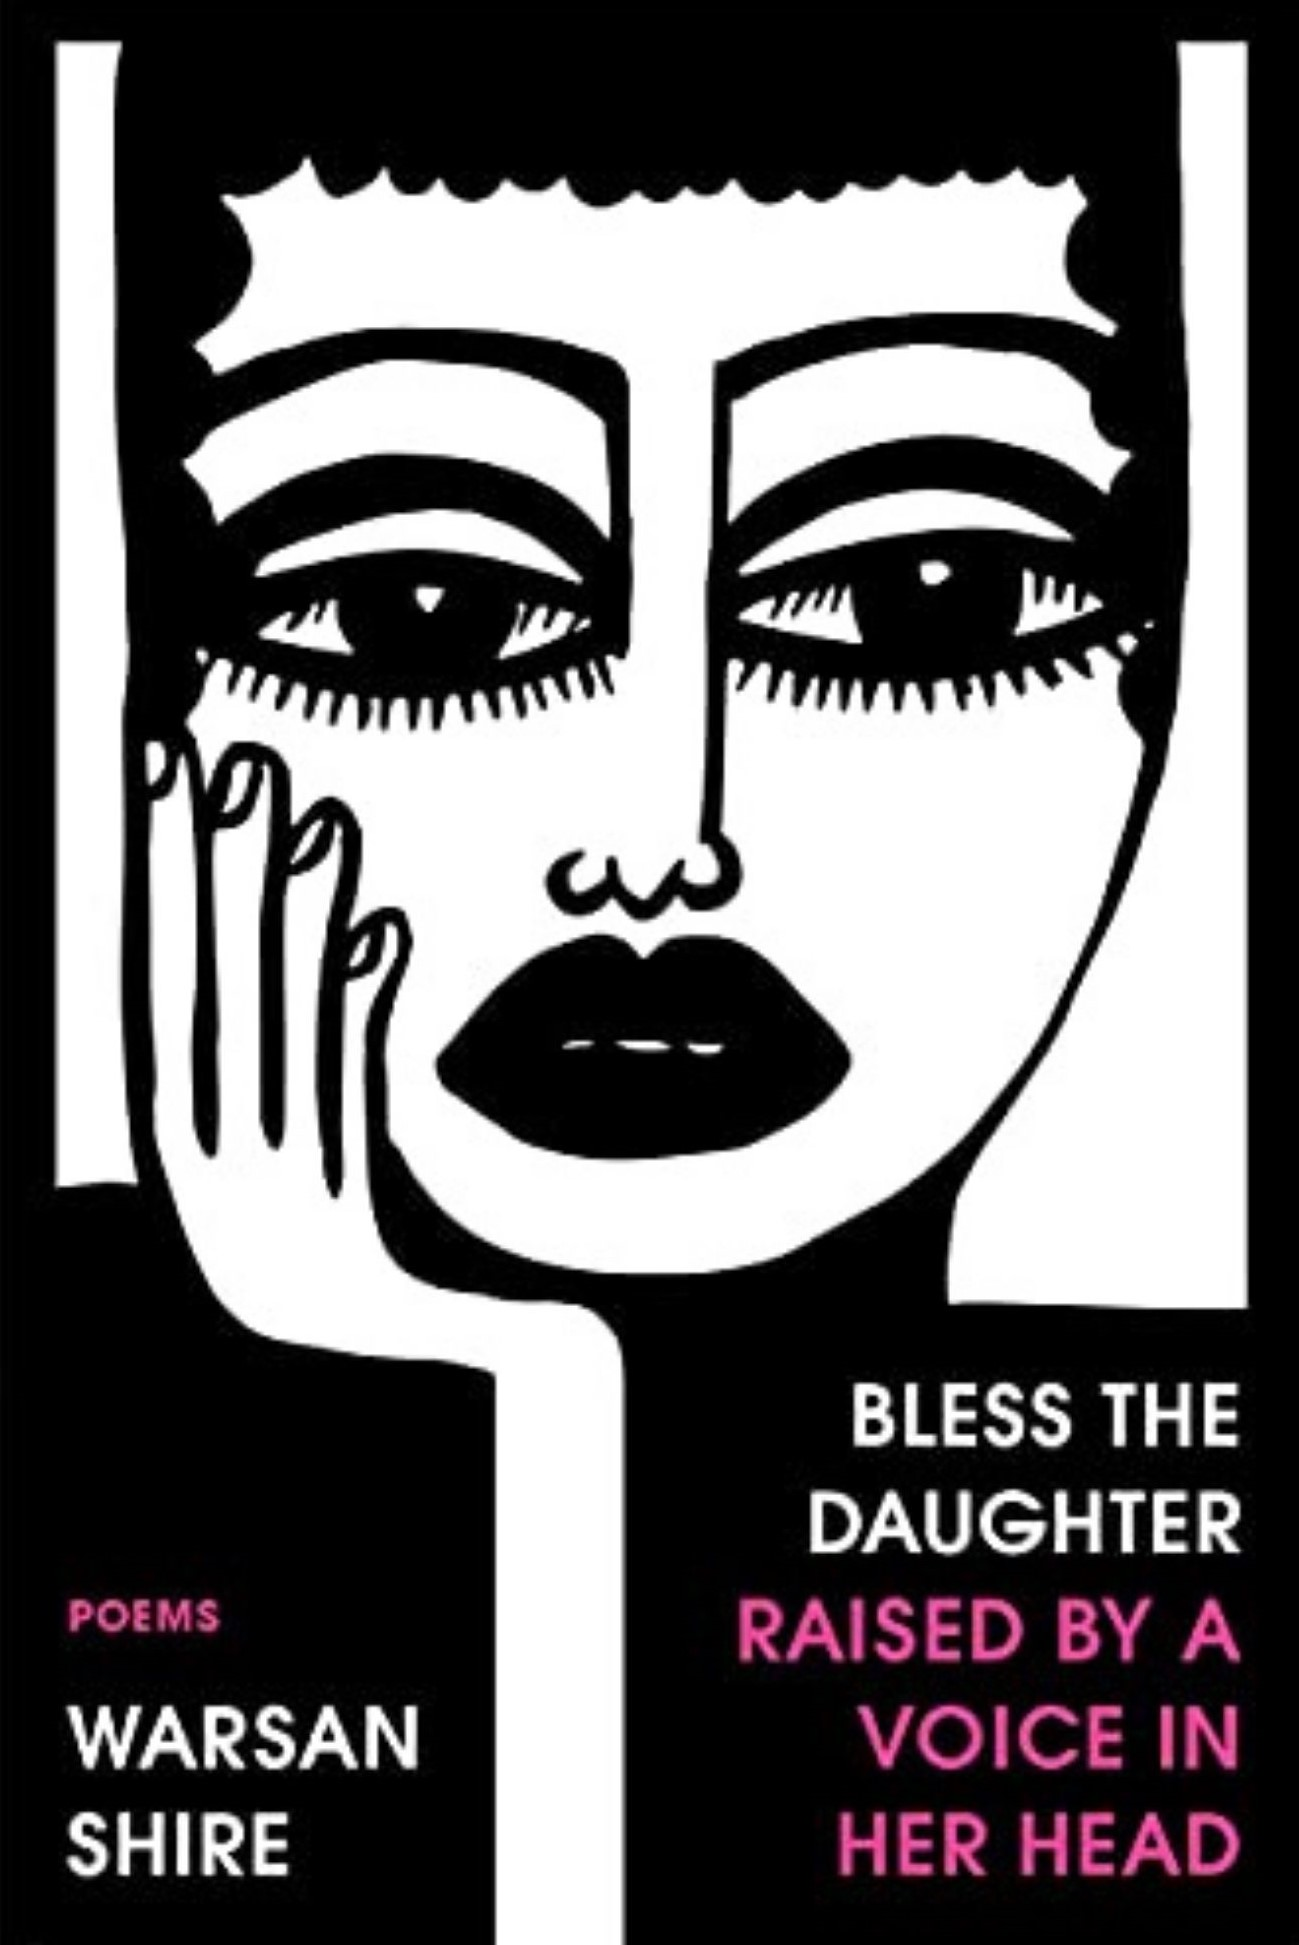 Warsan Shire - Bless the Daughter Raised by a Voice in Her Head